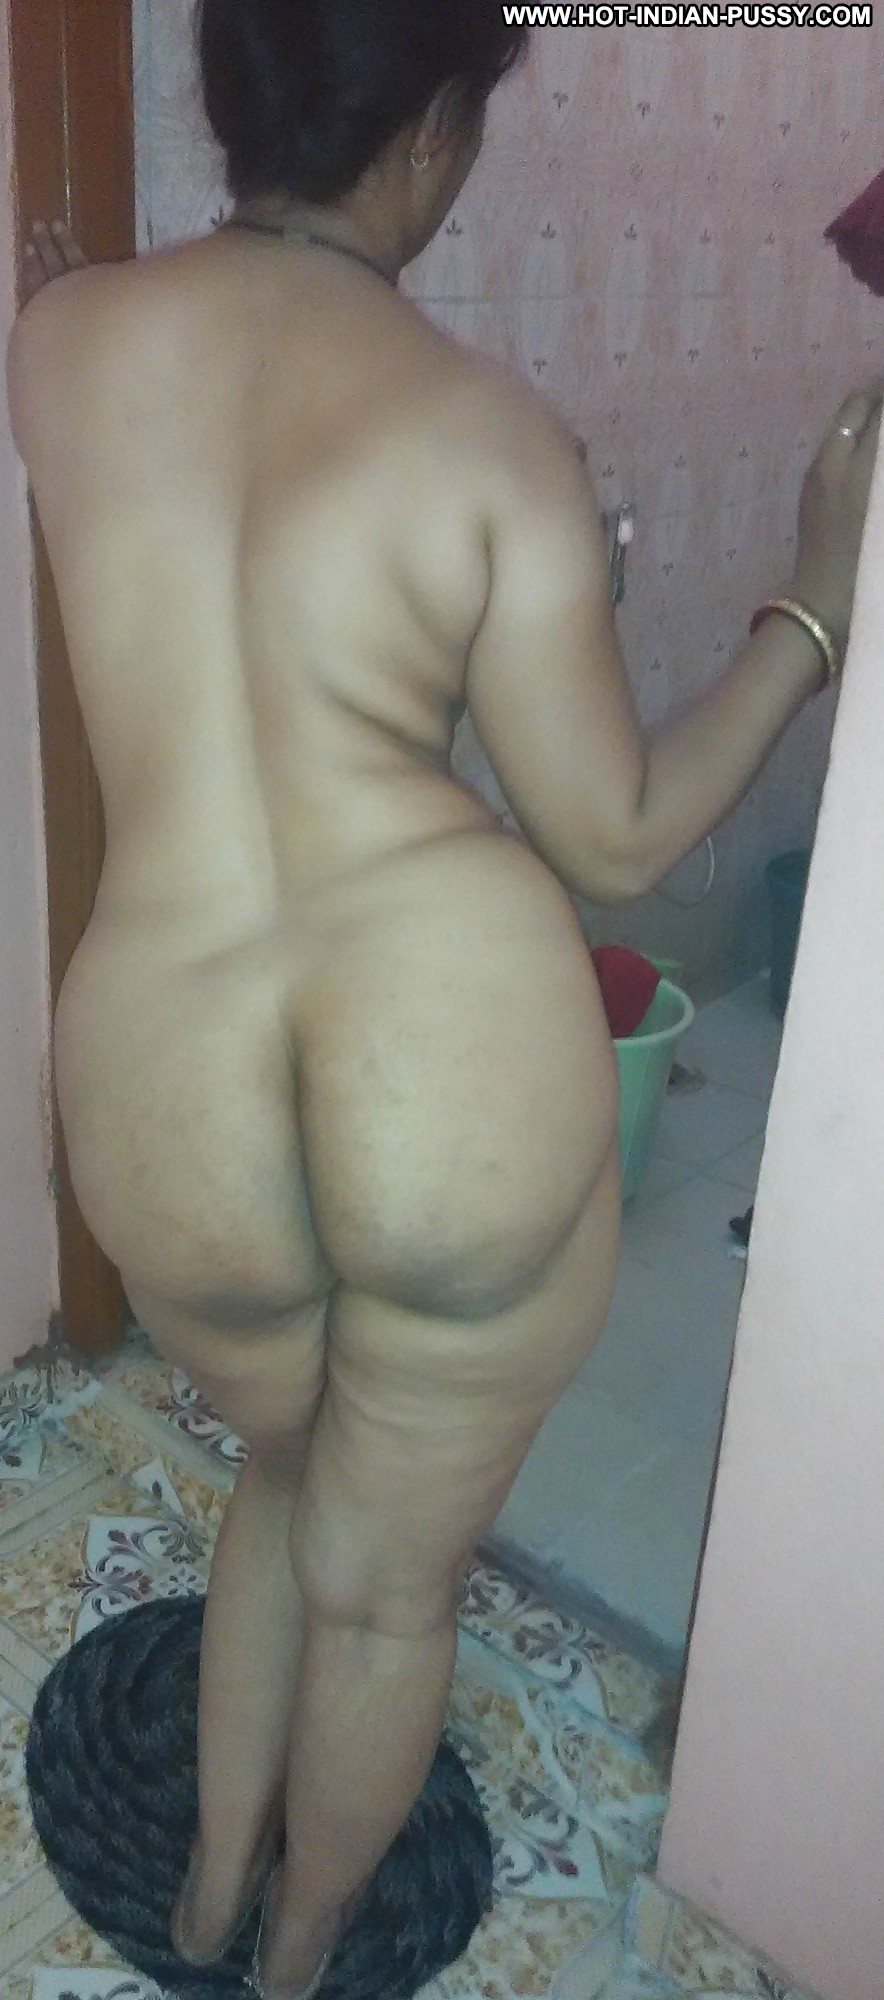 anal sex BBW Indian